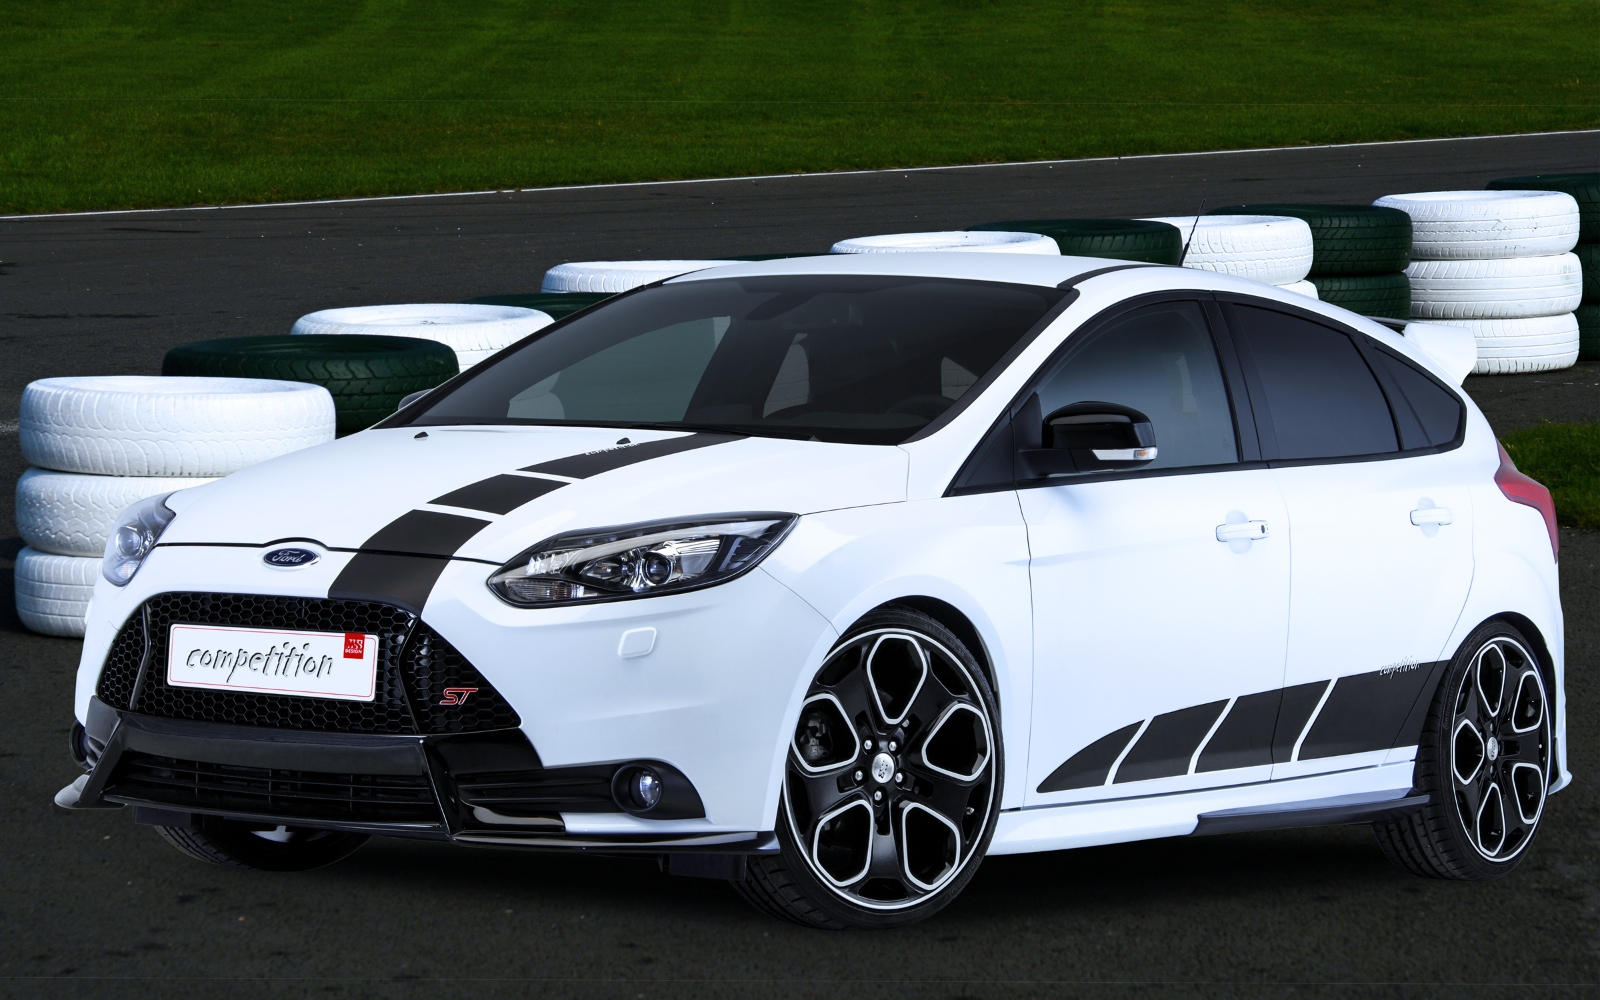 2013 ford focus st competition by ms design looks hot. Black Bedroom Furniture Sets. Home Design Ideas